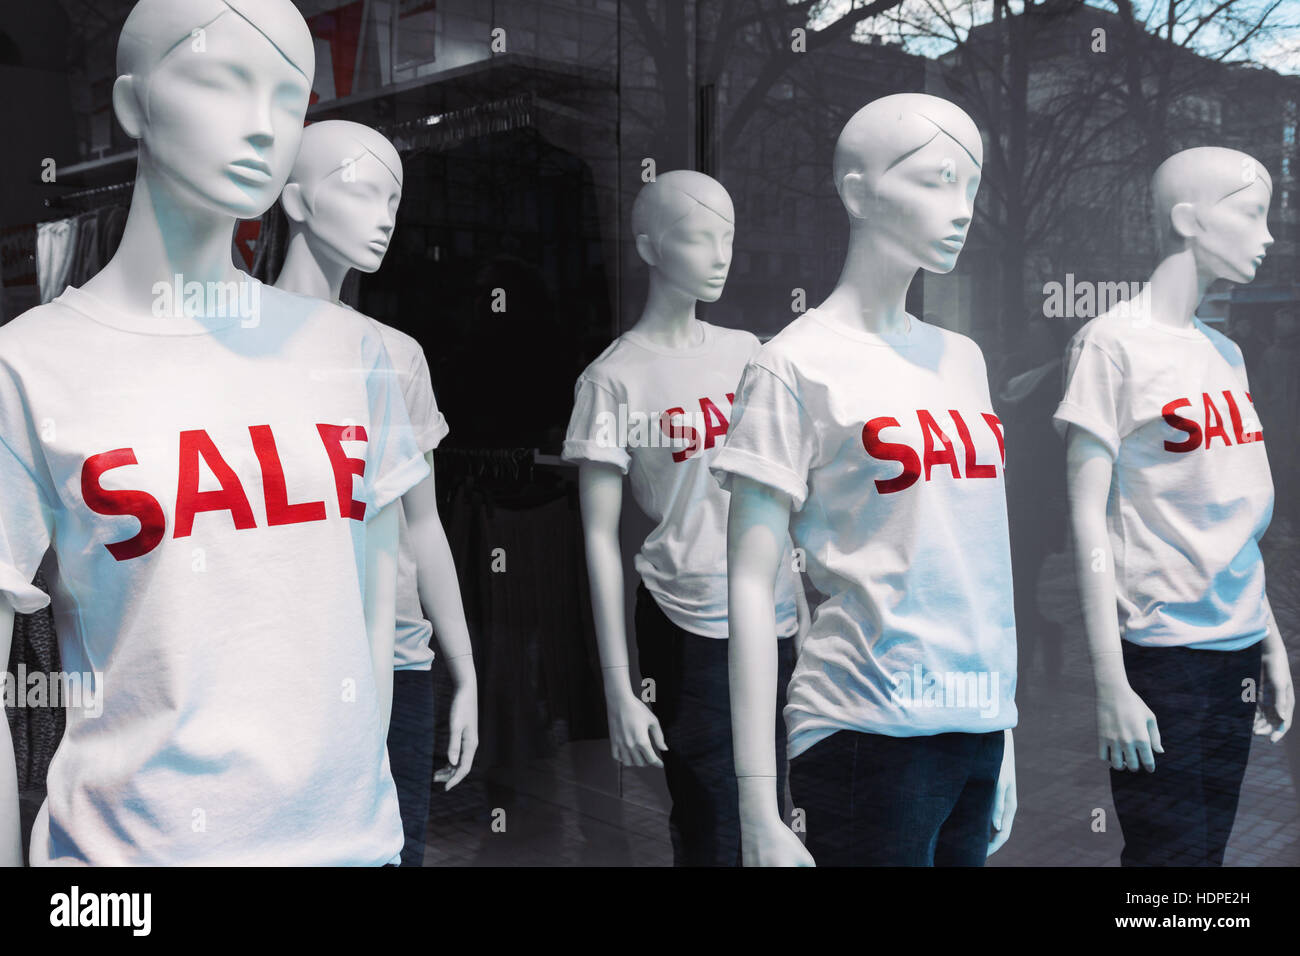 Window Display With Five Mannequins Wearing T Shirts With Text